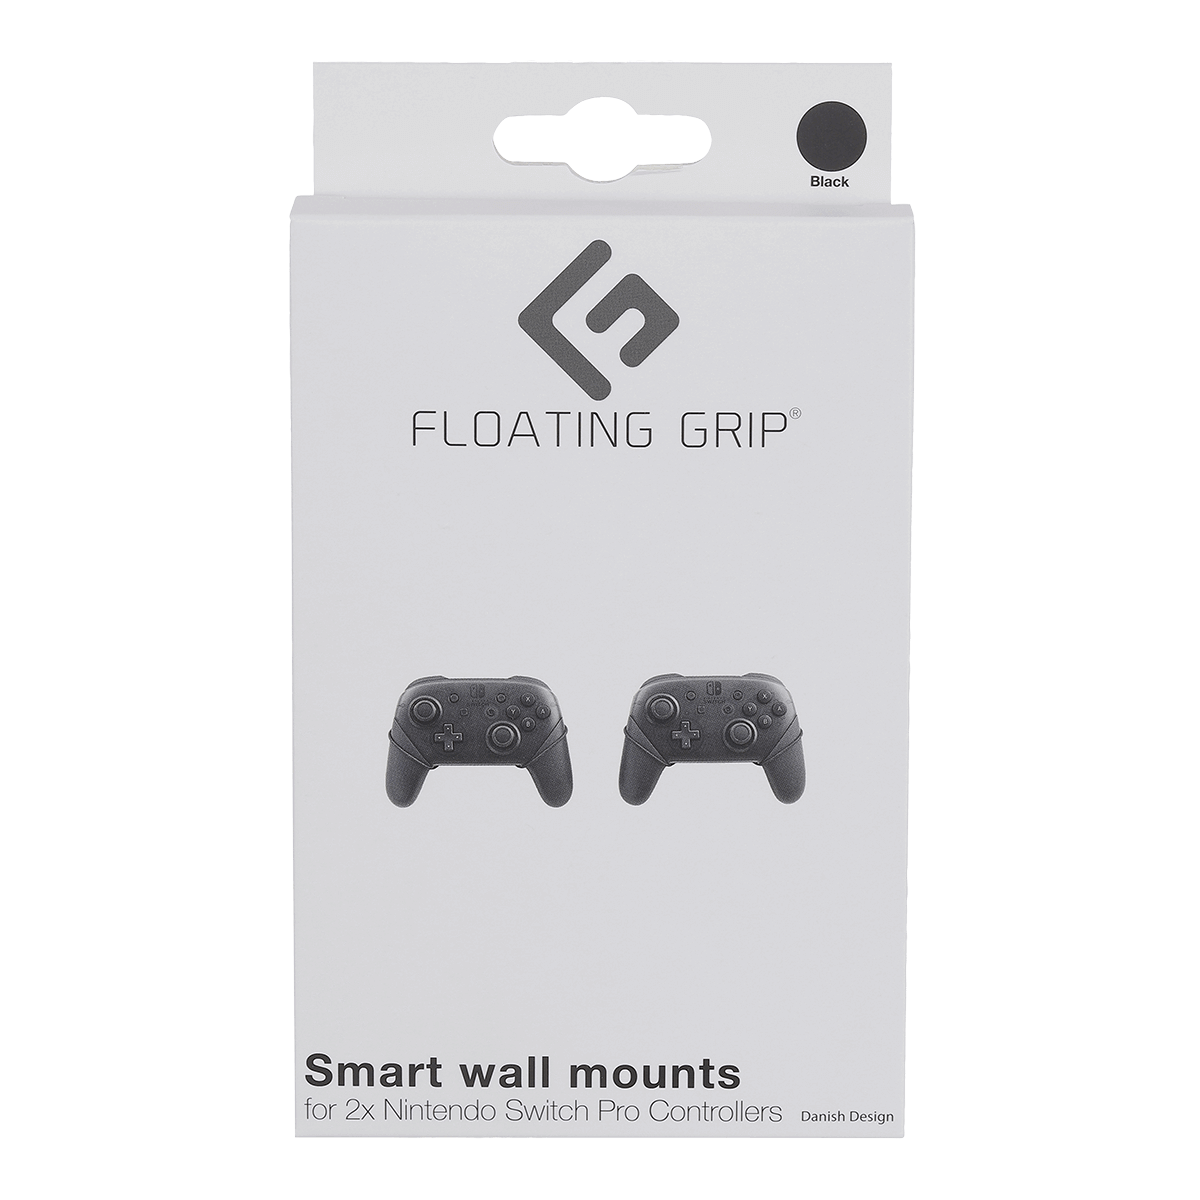 Nintendo Switch Pro Controller wall mount by FLOATING GRIP®, Black